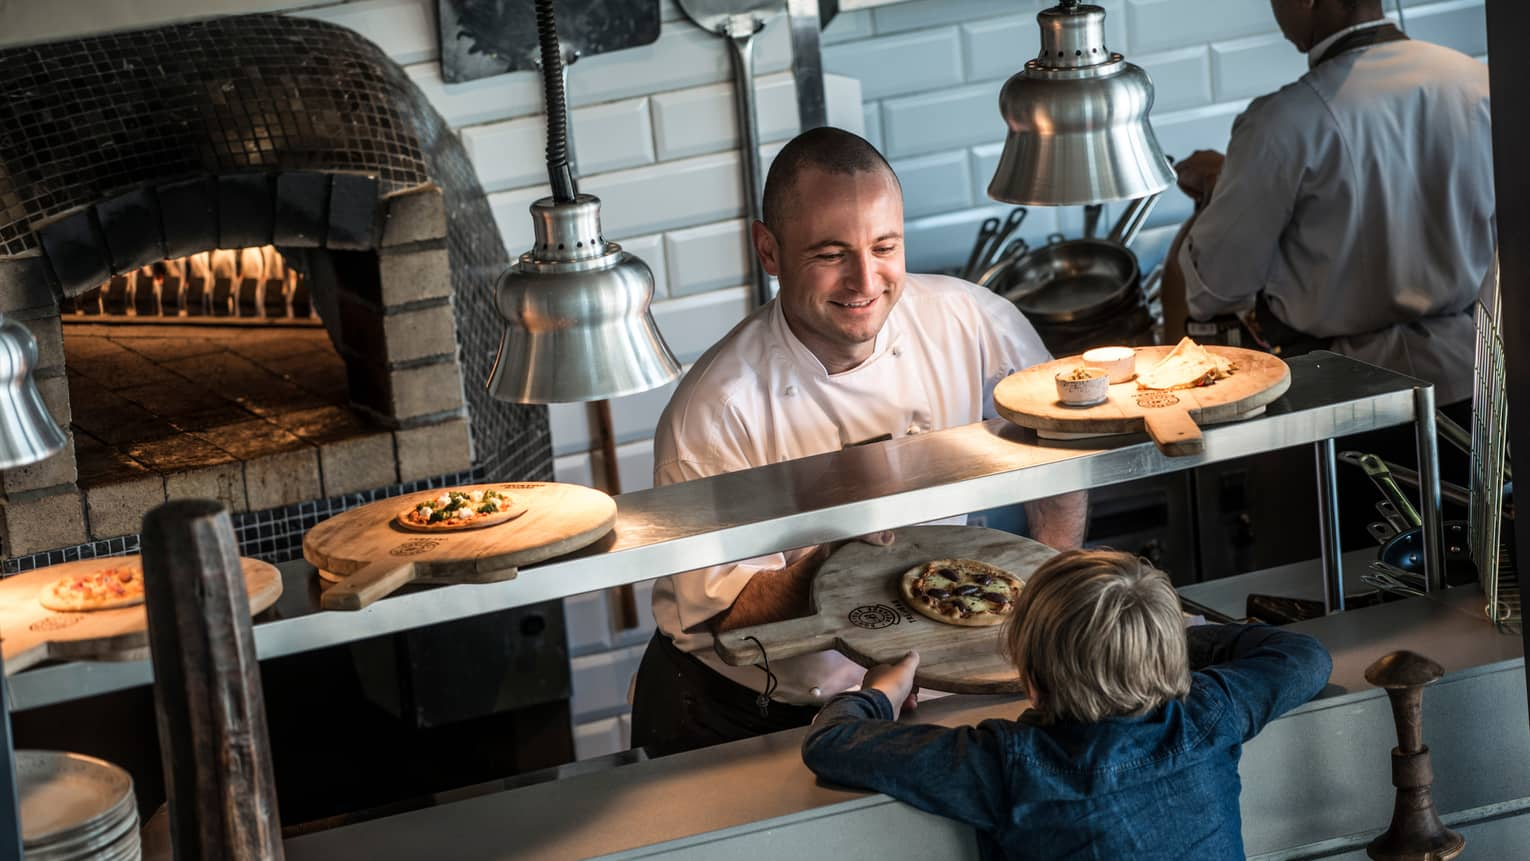 Chef at open kitchen line near wood-burning oven passes wood tray with small pizza to child